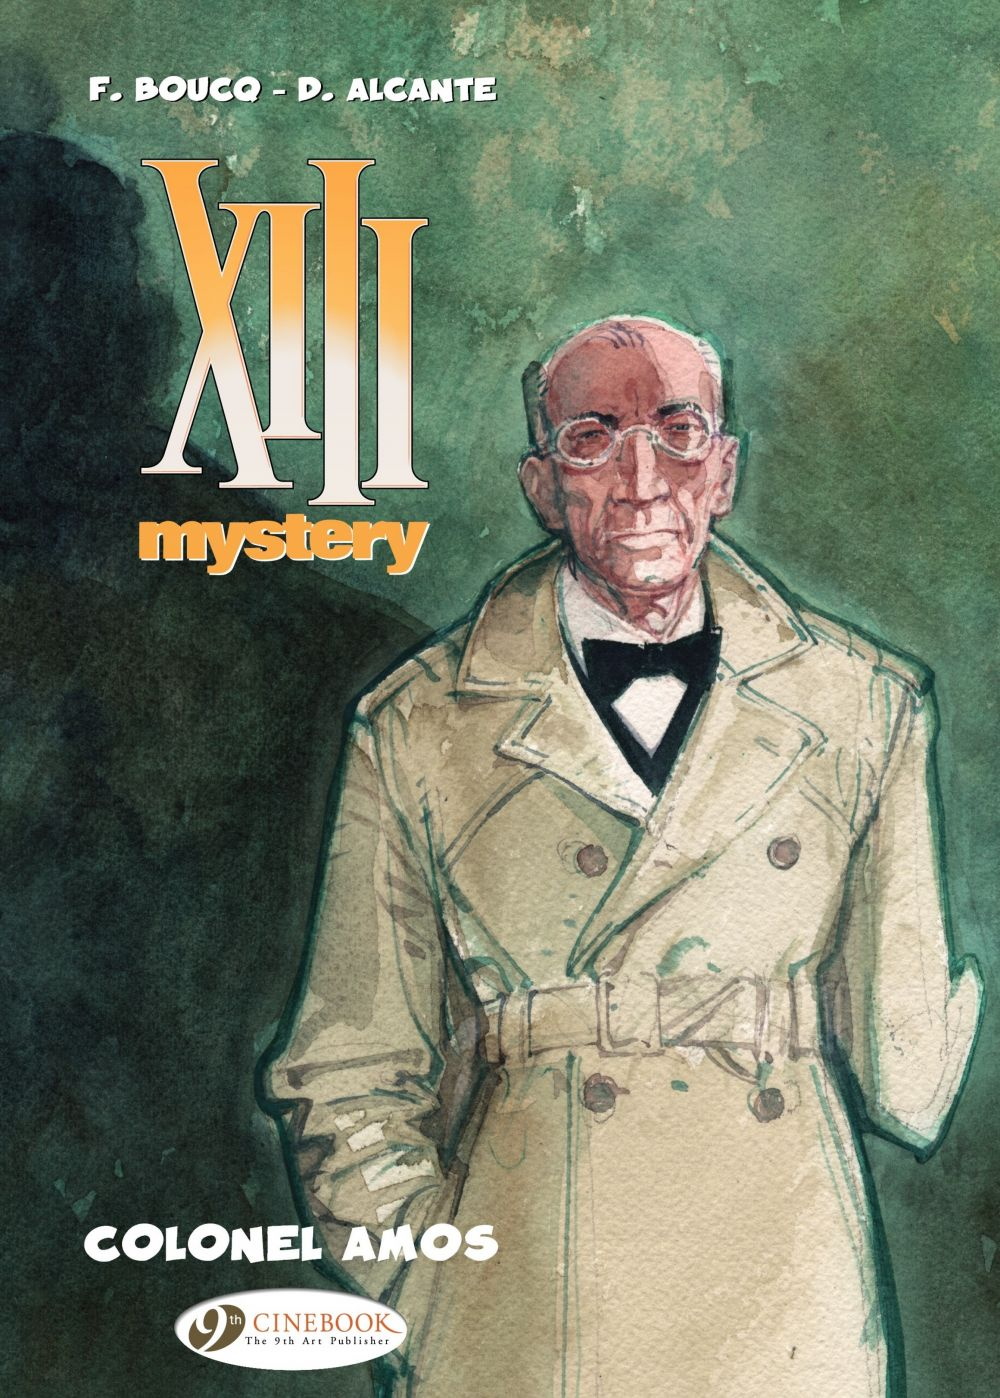 XIII Mystery - Volume 4 - Colonel Amos